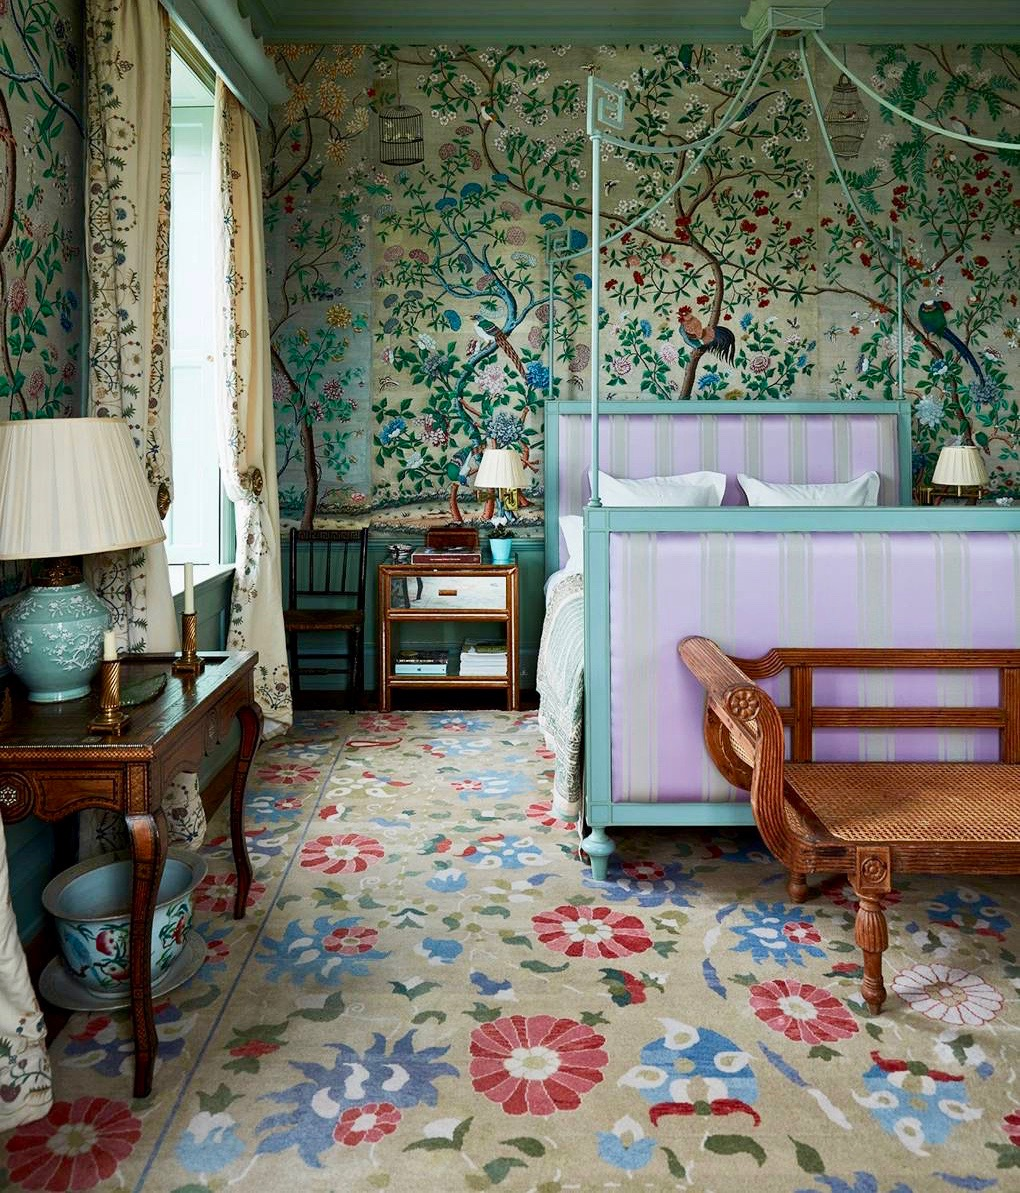 How to Decorate Your Home in the English Country House Style   Katie     English Country House Bedroom with Chinoiserie Wallpaper and a Canopy Bed